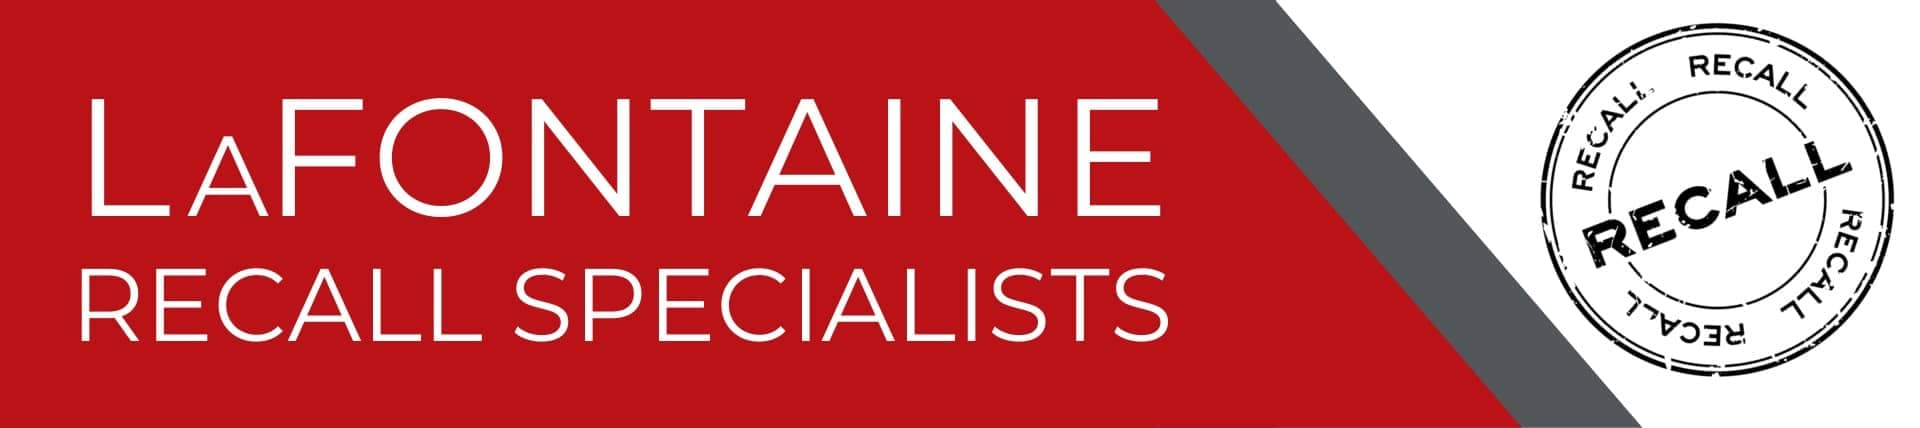 LaFontaine Recall Specialists